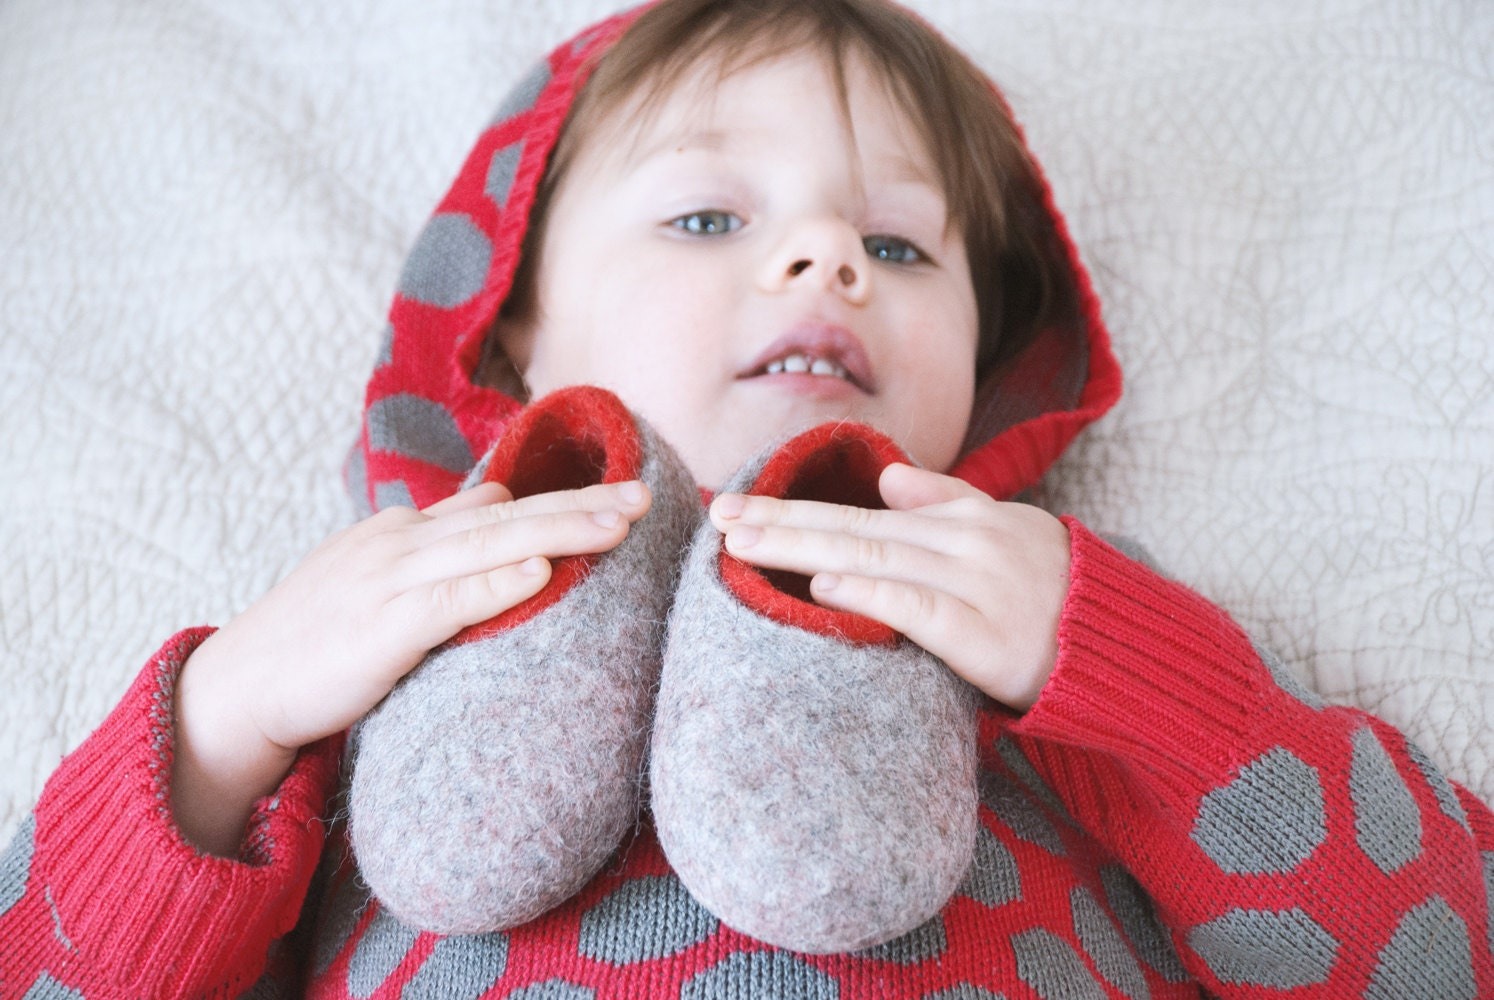 ff83988c9788 ... felted wool slippers for children, little kid gift wool slippers, non  slip home shoes. 1